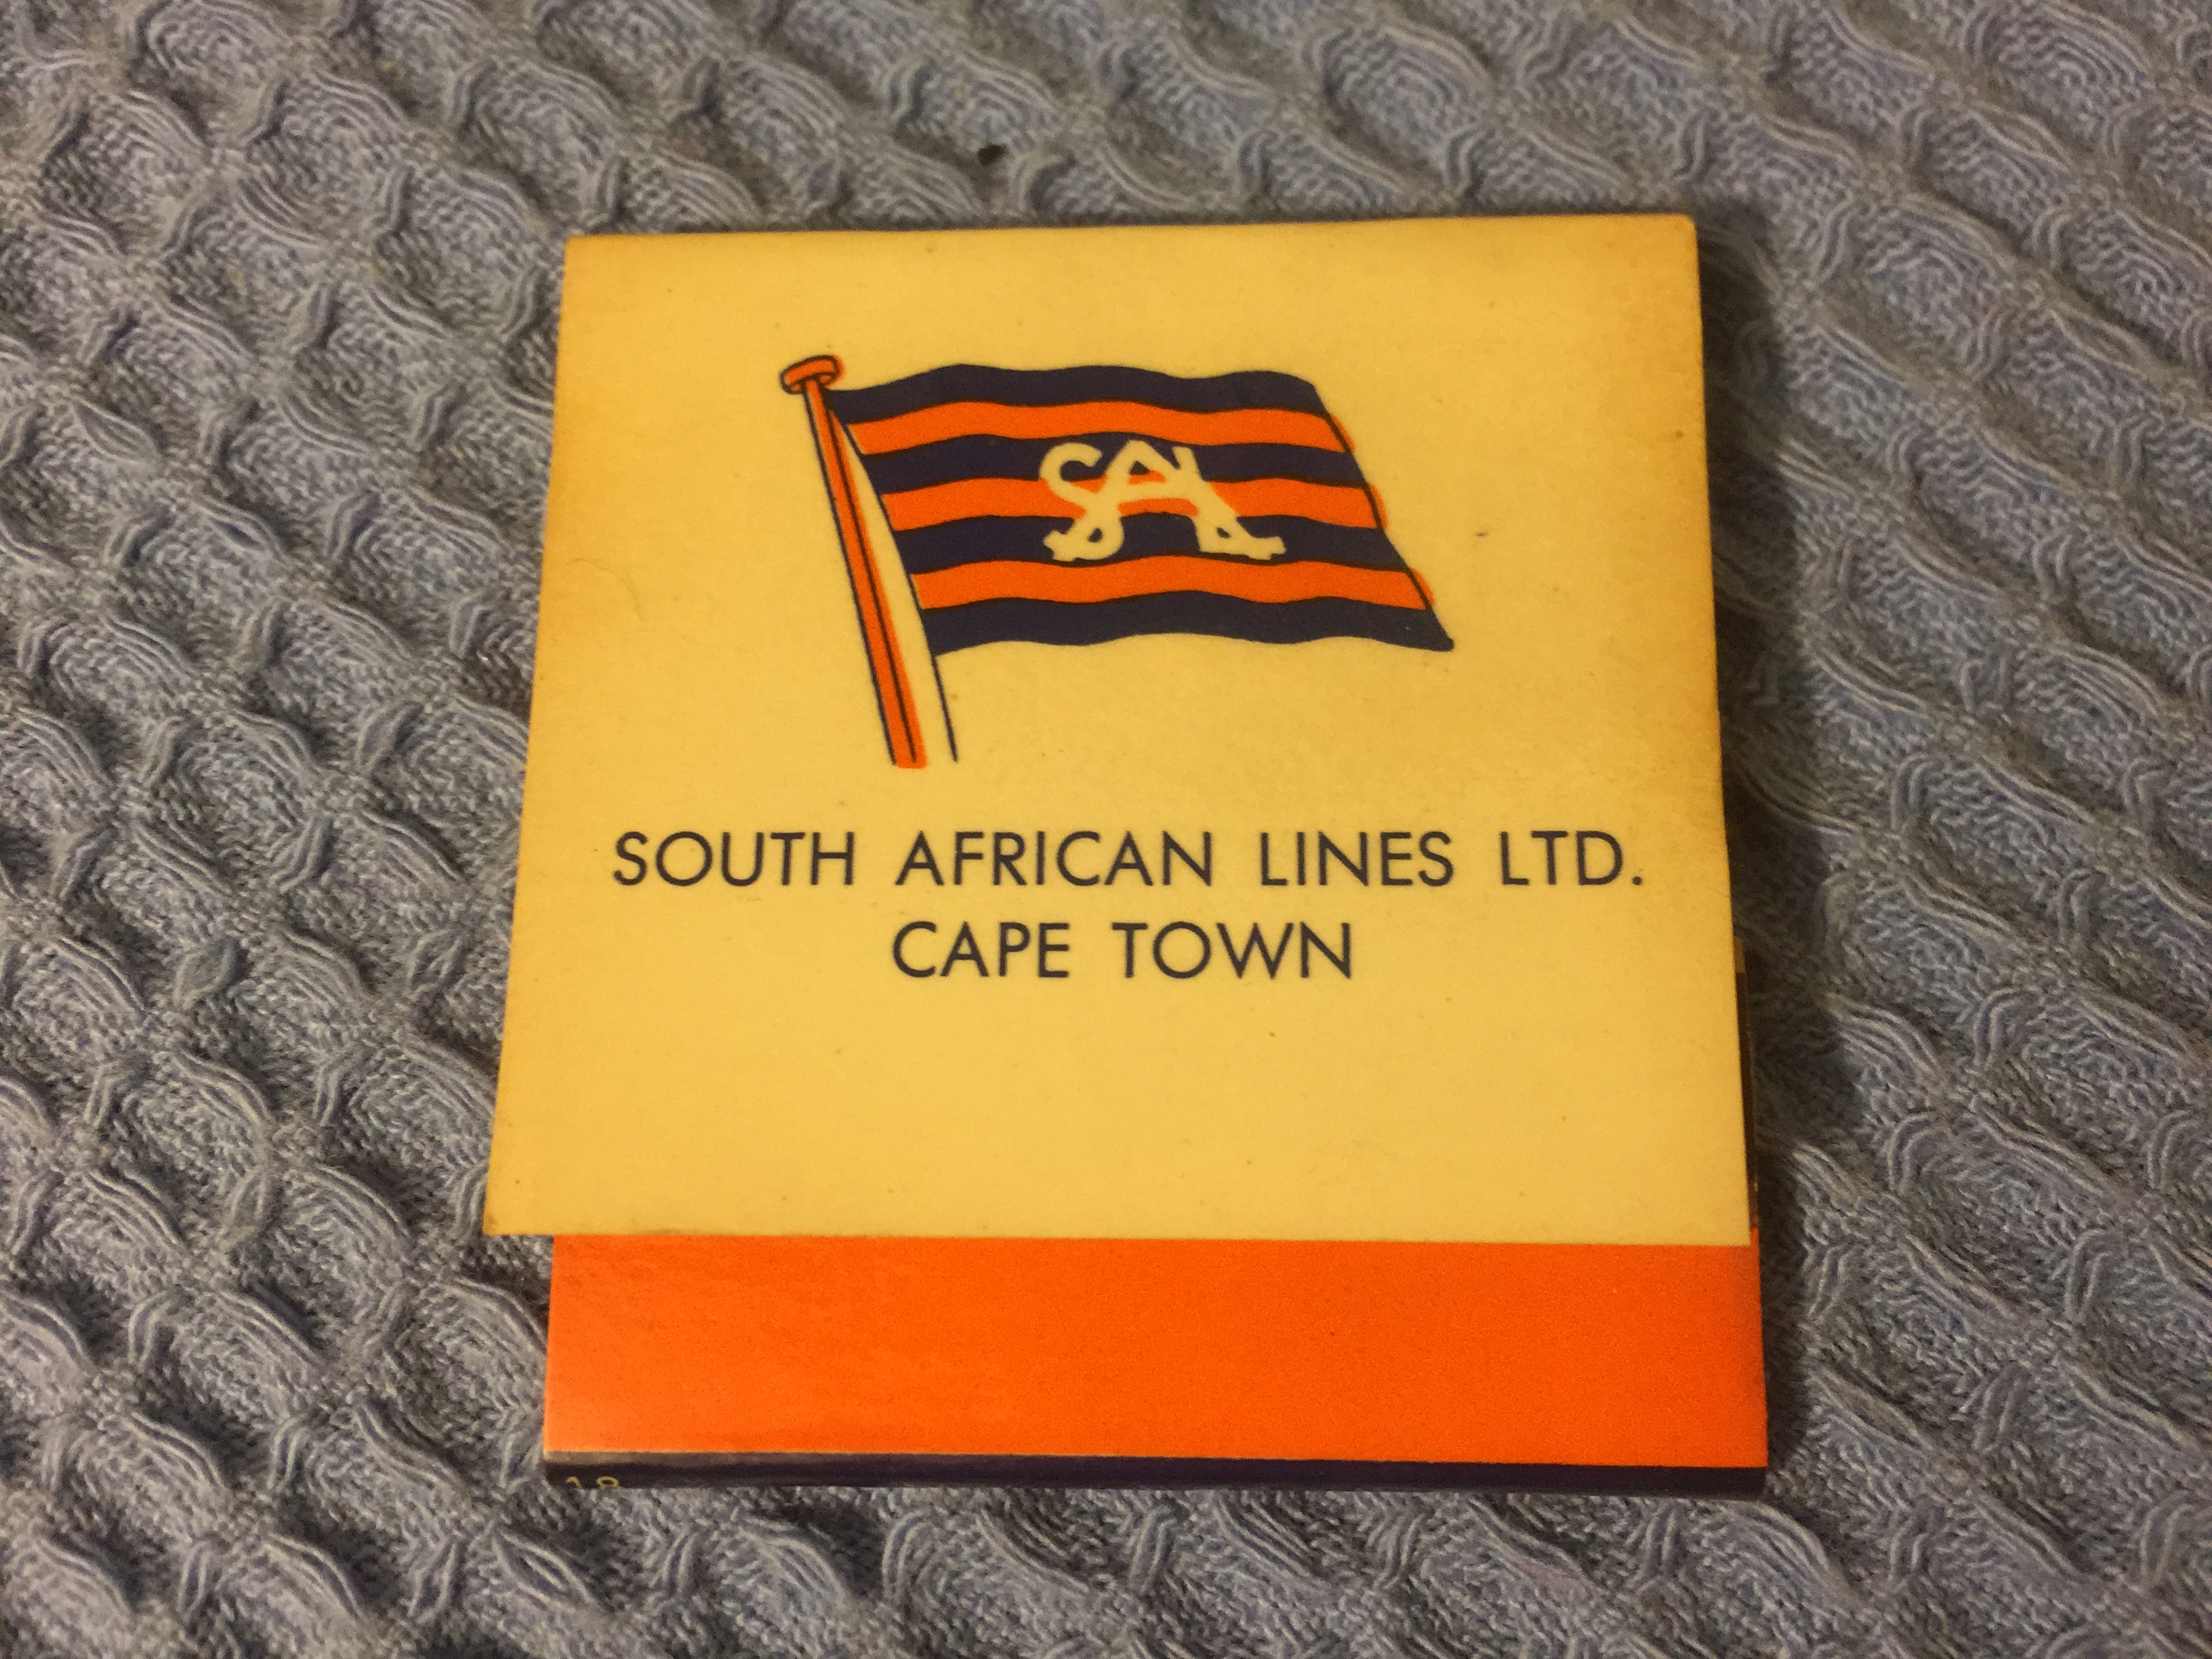 EARLY UNUSED FLAT PACK BOX OF MATCHES FROM THE SOUTH AFRICAN LINES LIMITED CAPE TOWN